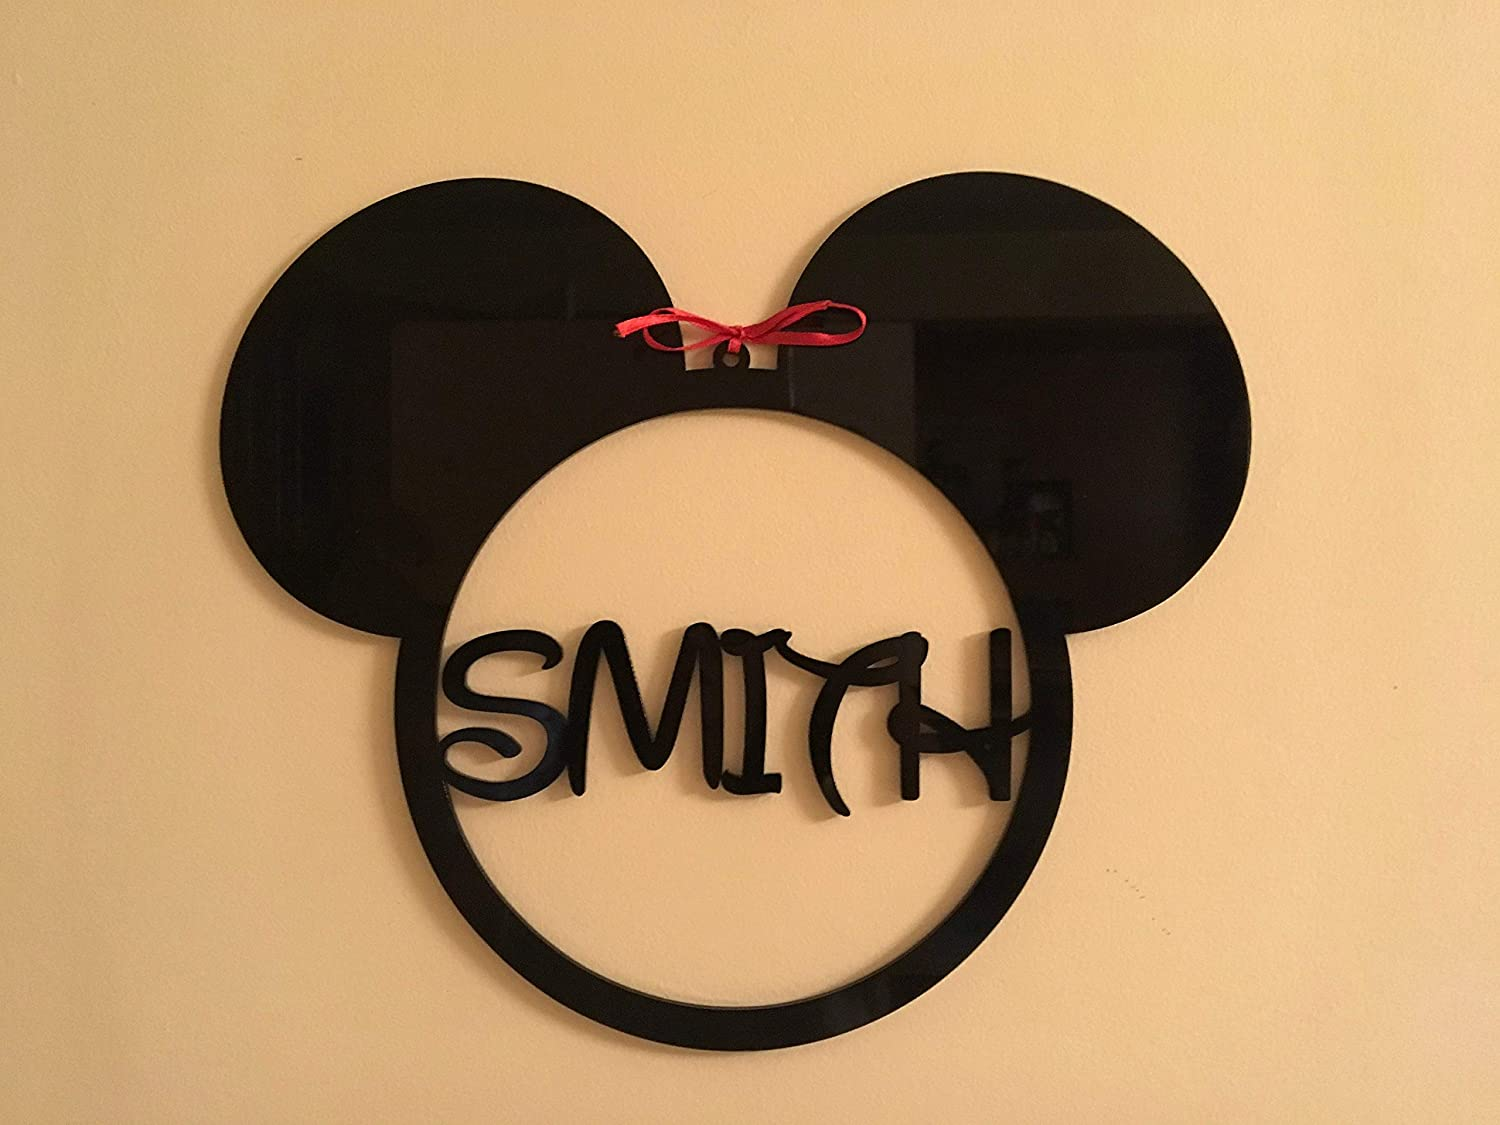 Mickey Mouse Head Monogram Personalized Any Name Sign Acrylic Hanging Decorations Minnie Mouse Ears Metal Ornament Disney Shape Nursery Wall Art Gifts Kids Bedroom Custom House Decor Birthday Present